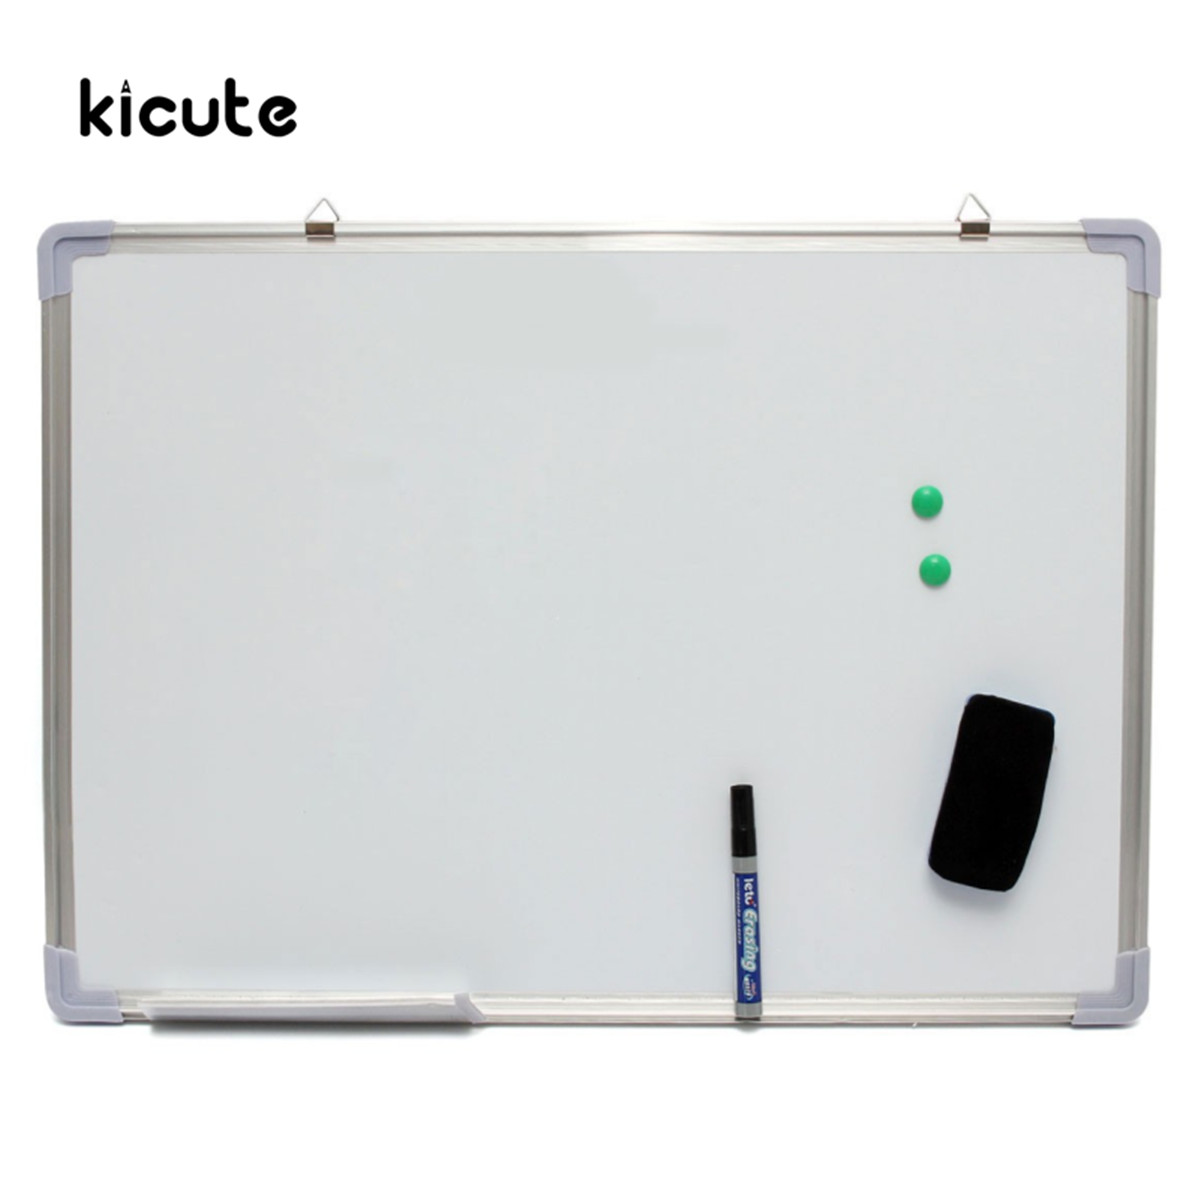 Kicute 500x700MM Magnetic Dry Erase Whiteboard Writing Board Double Side With Pen Erase Magnets Buttons For Office School цена